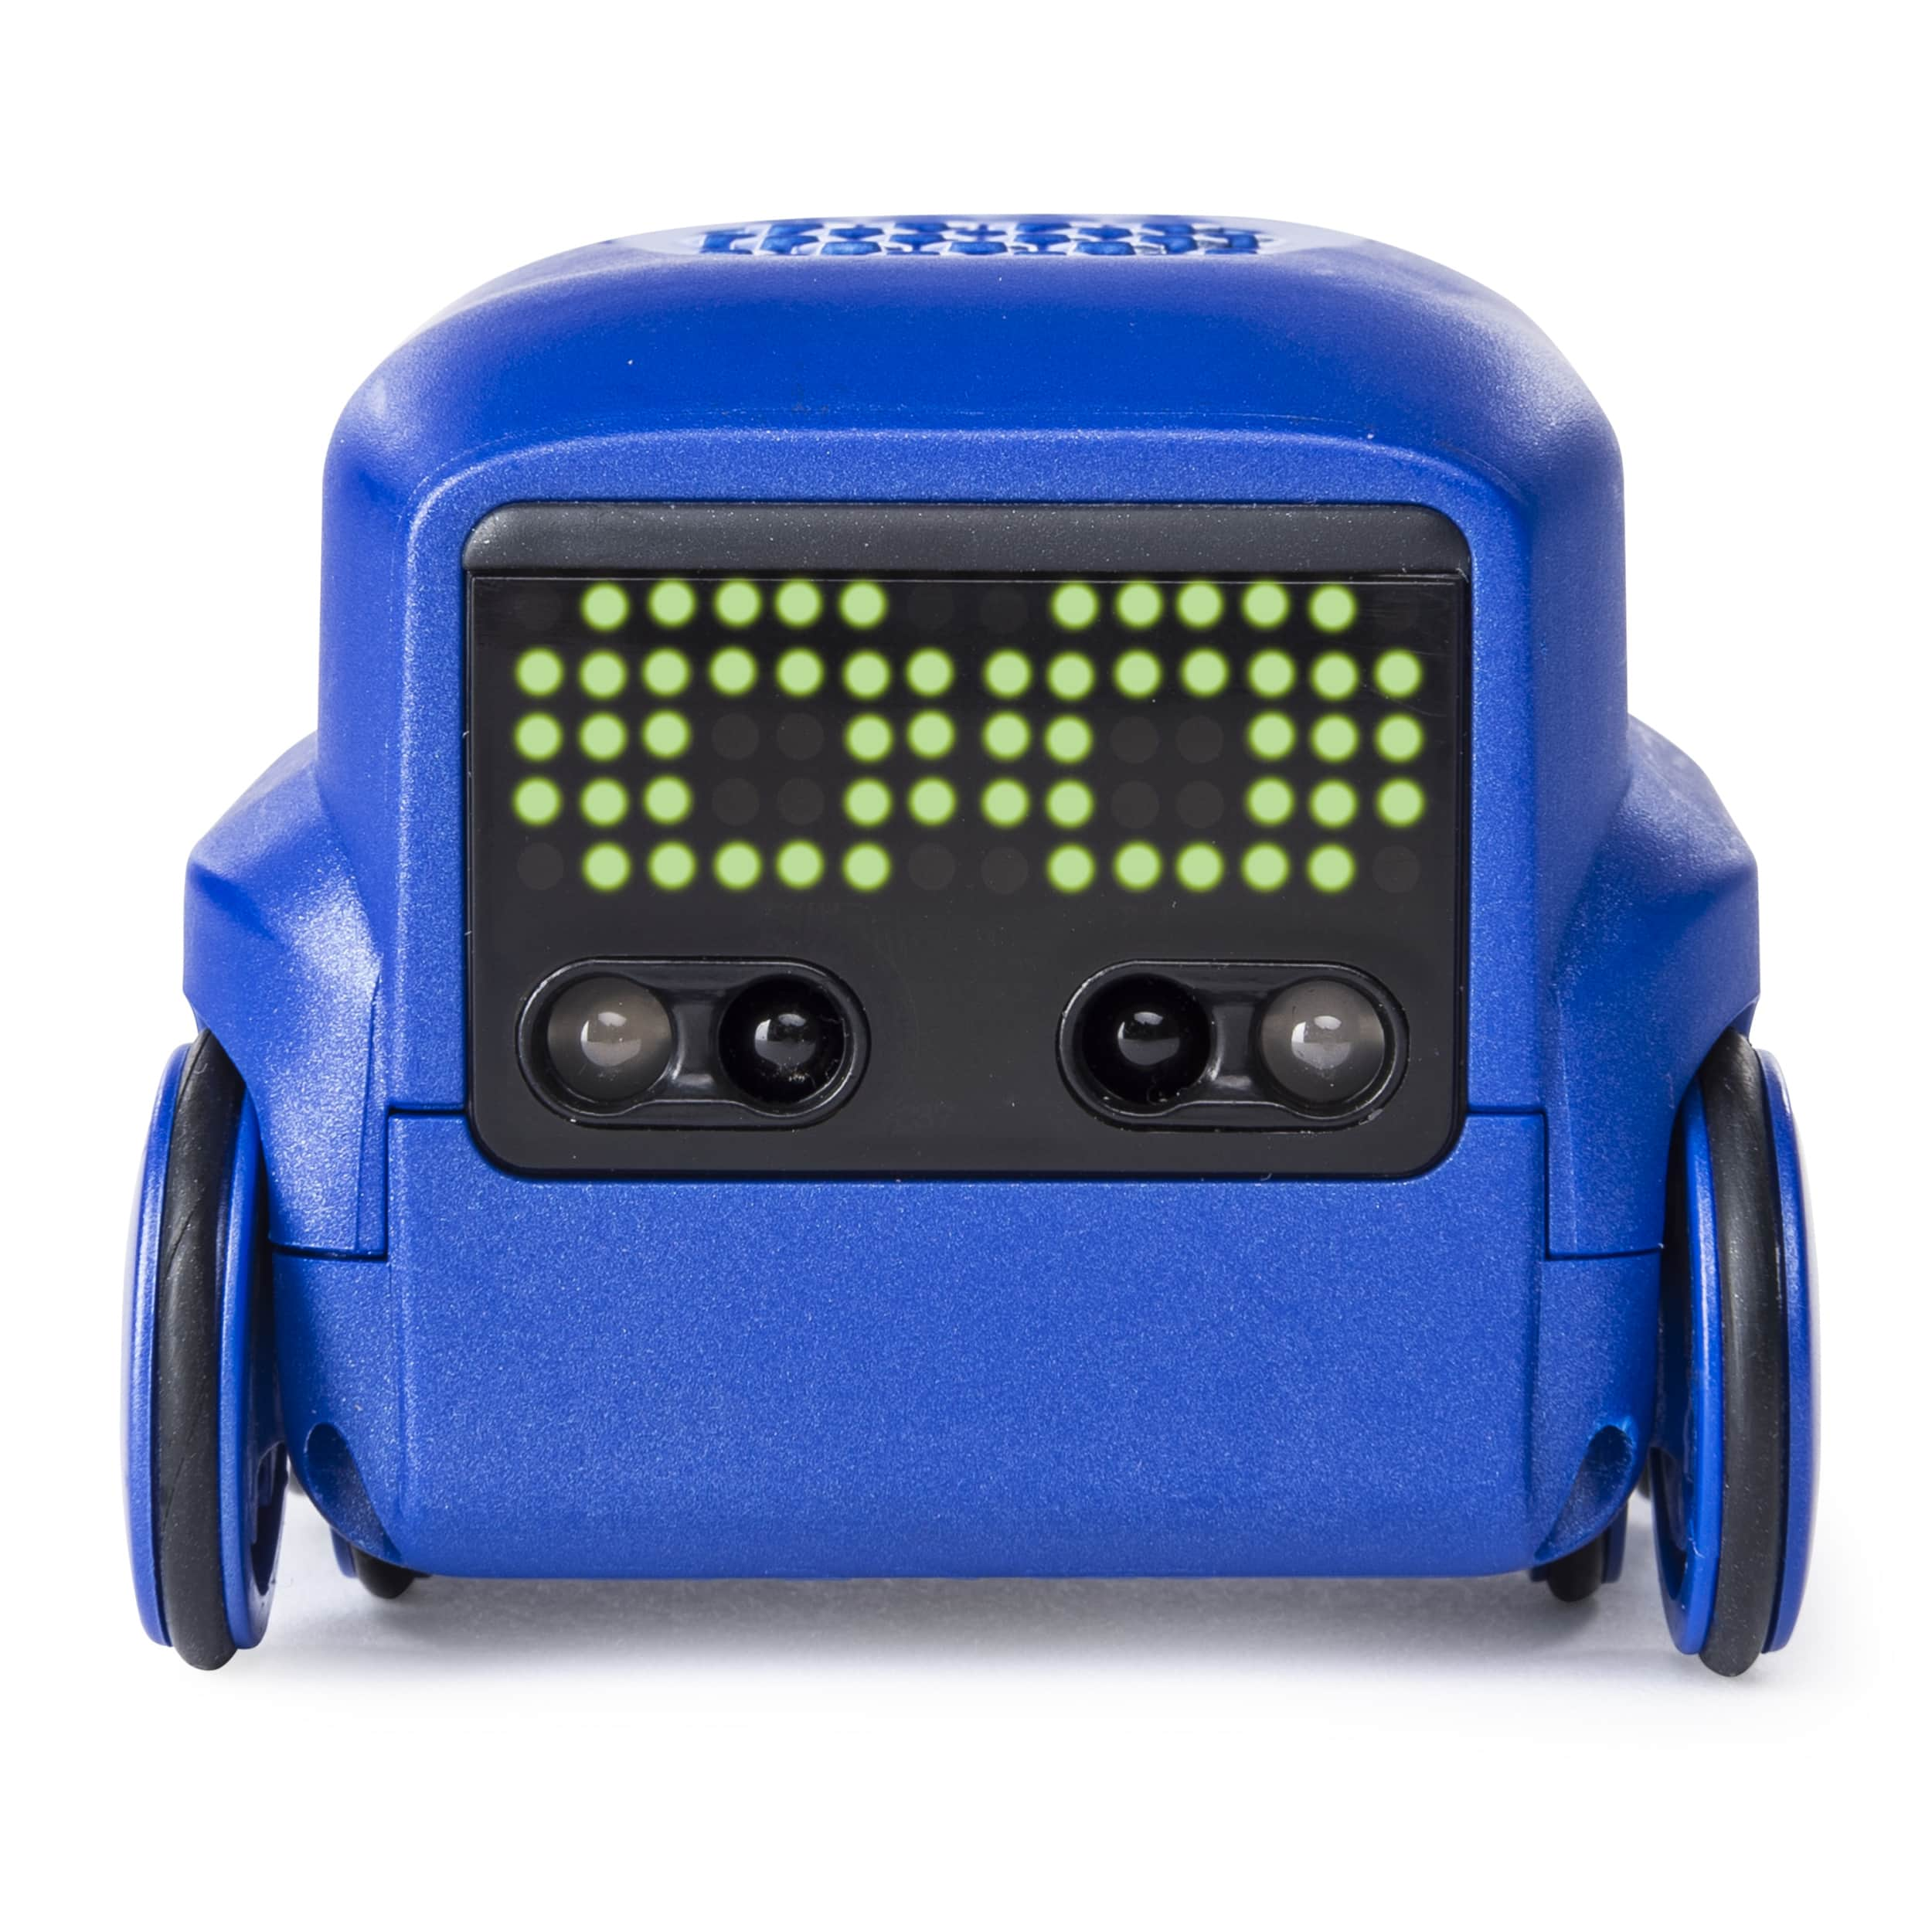 Boxer - Interactive A.I. Robot Toy with Personality and Emotions, for Ages 6 and Up $25.99